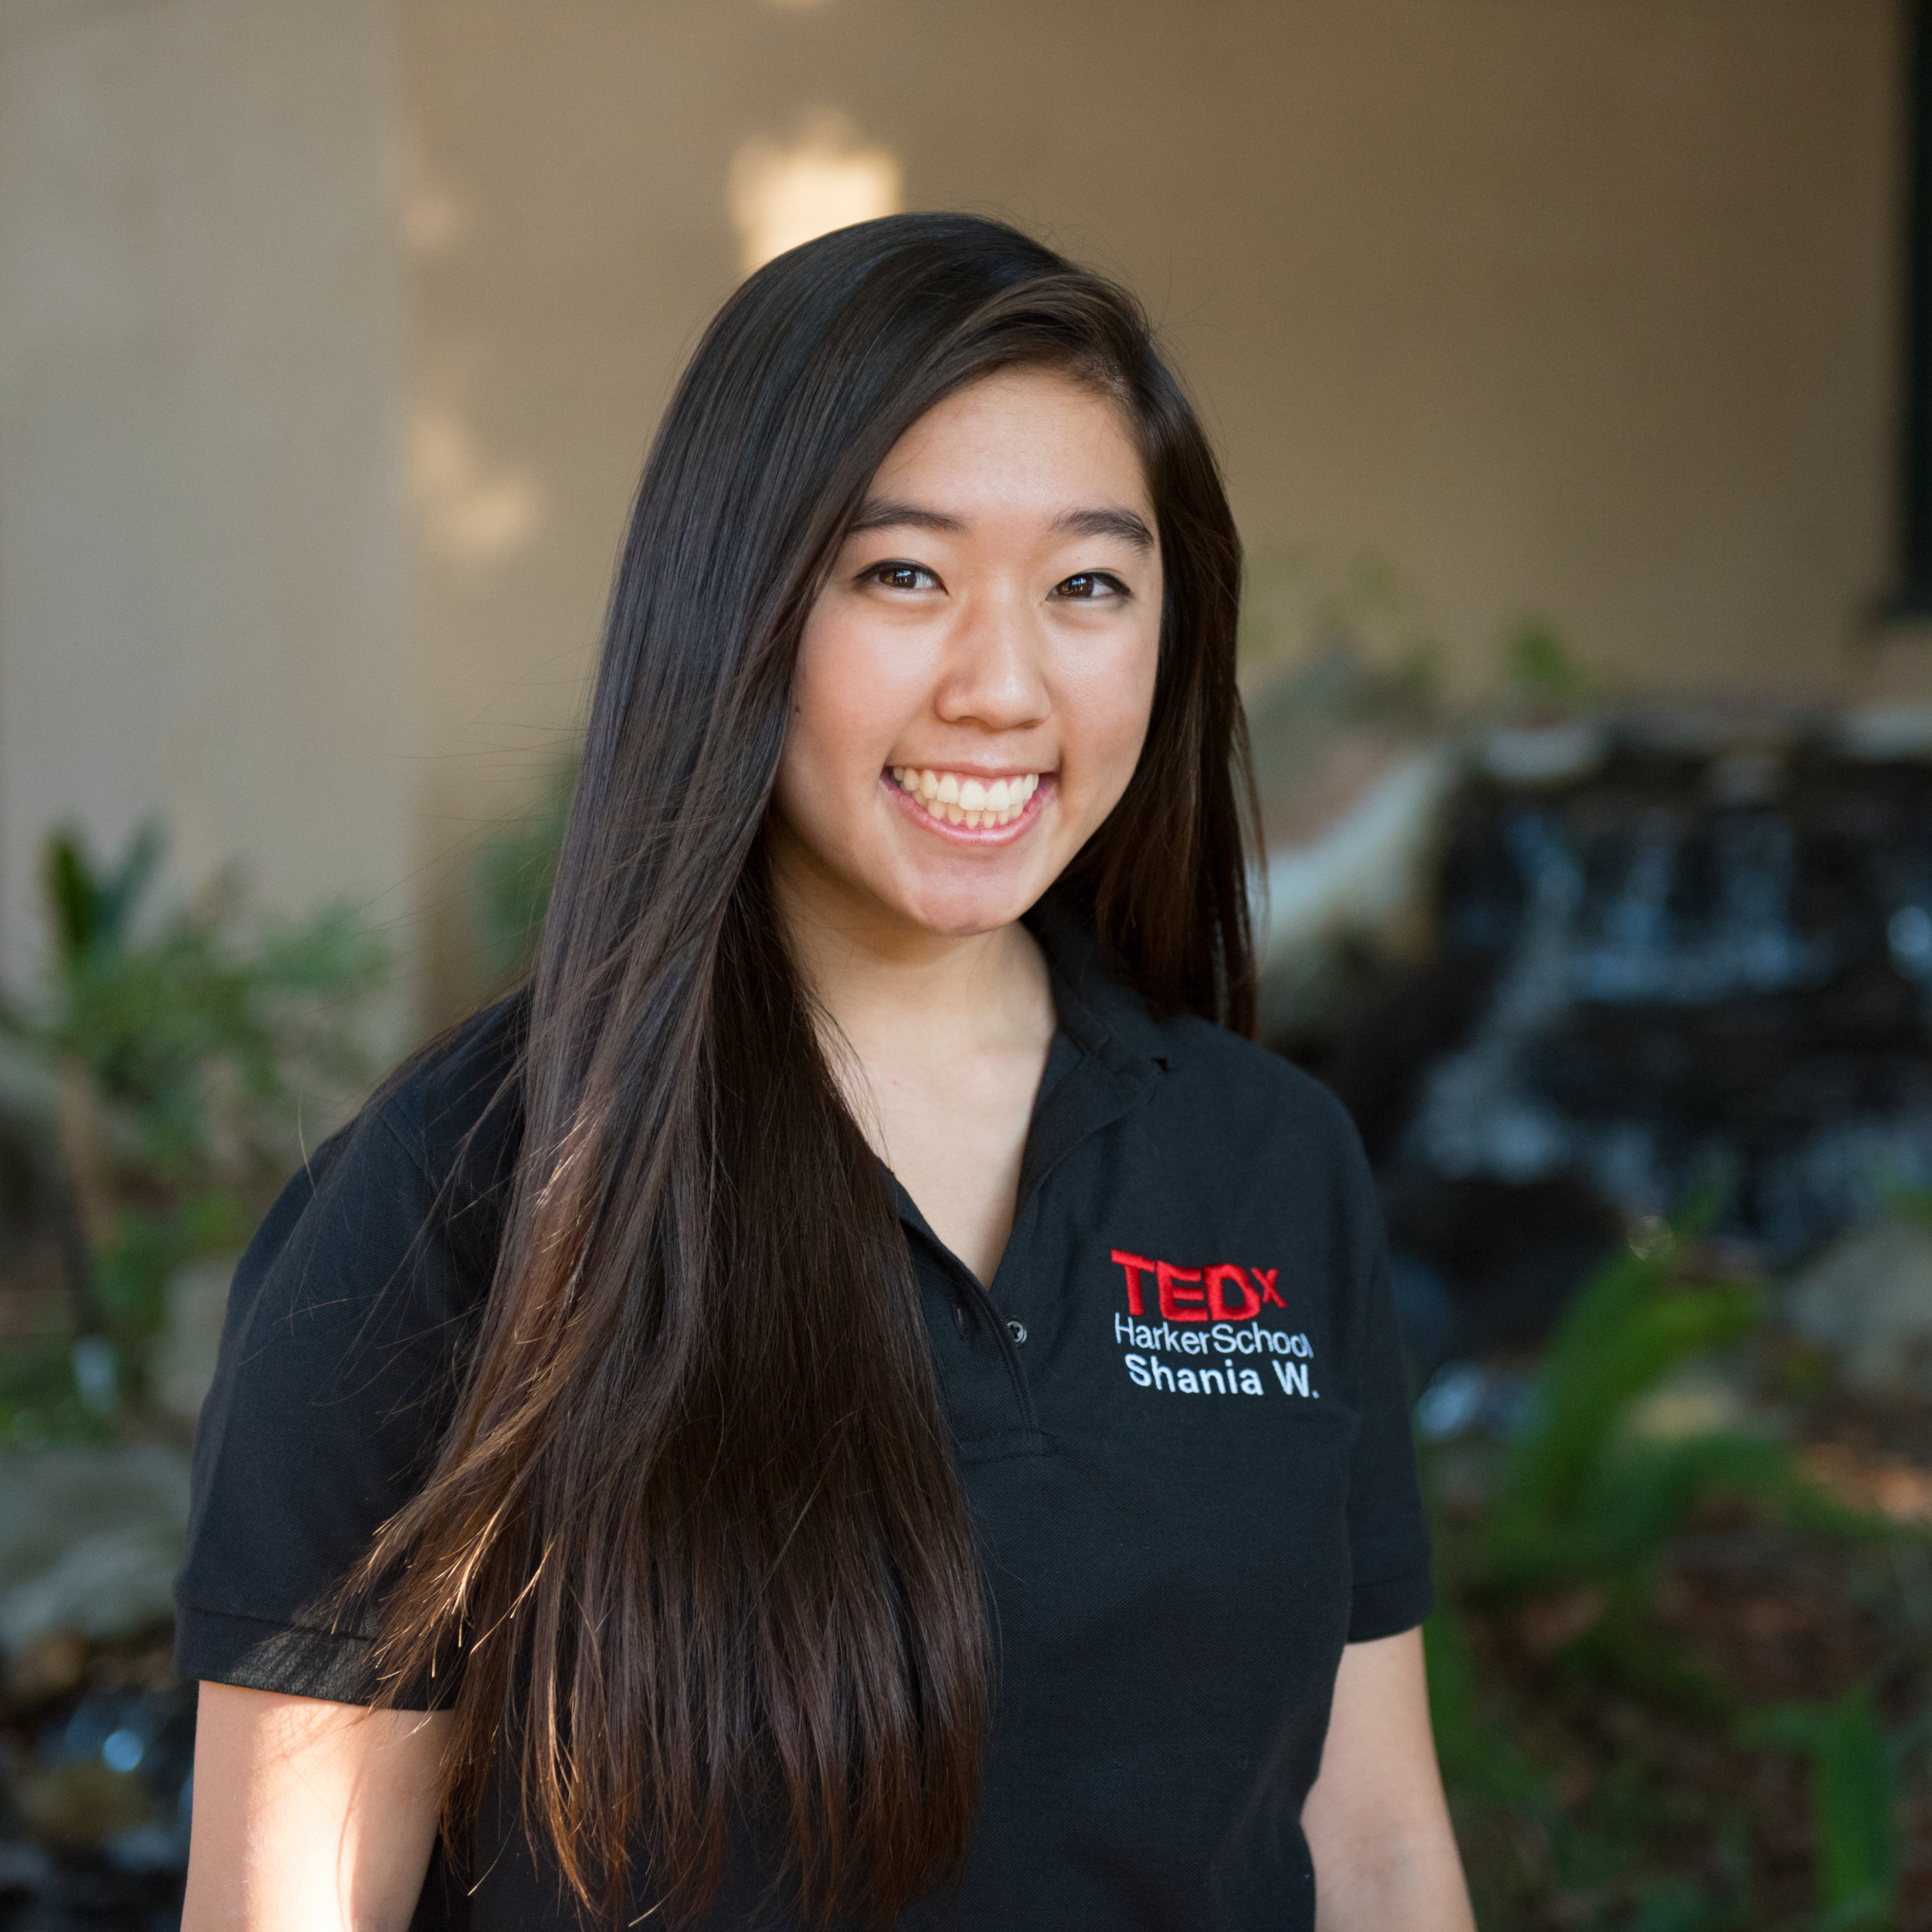 Shania Wang - Shania Wang is currently a junior at The Harker School in San Jose and the Marketing Associate for TEDxHarkerSchool. Outgoing and friendly, she enjoys meeting new people. Aside from TEDx, other positions she holds include DECA VP of Public Relations, Student Council Treasurer, and WiSTEM Publicity Officer. Shania is also a team manager for varsity basketball and a member of National Honor Society. Outside of school,she enjoys STEM research and discovering new music and places to eat.